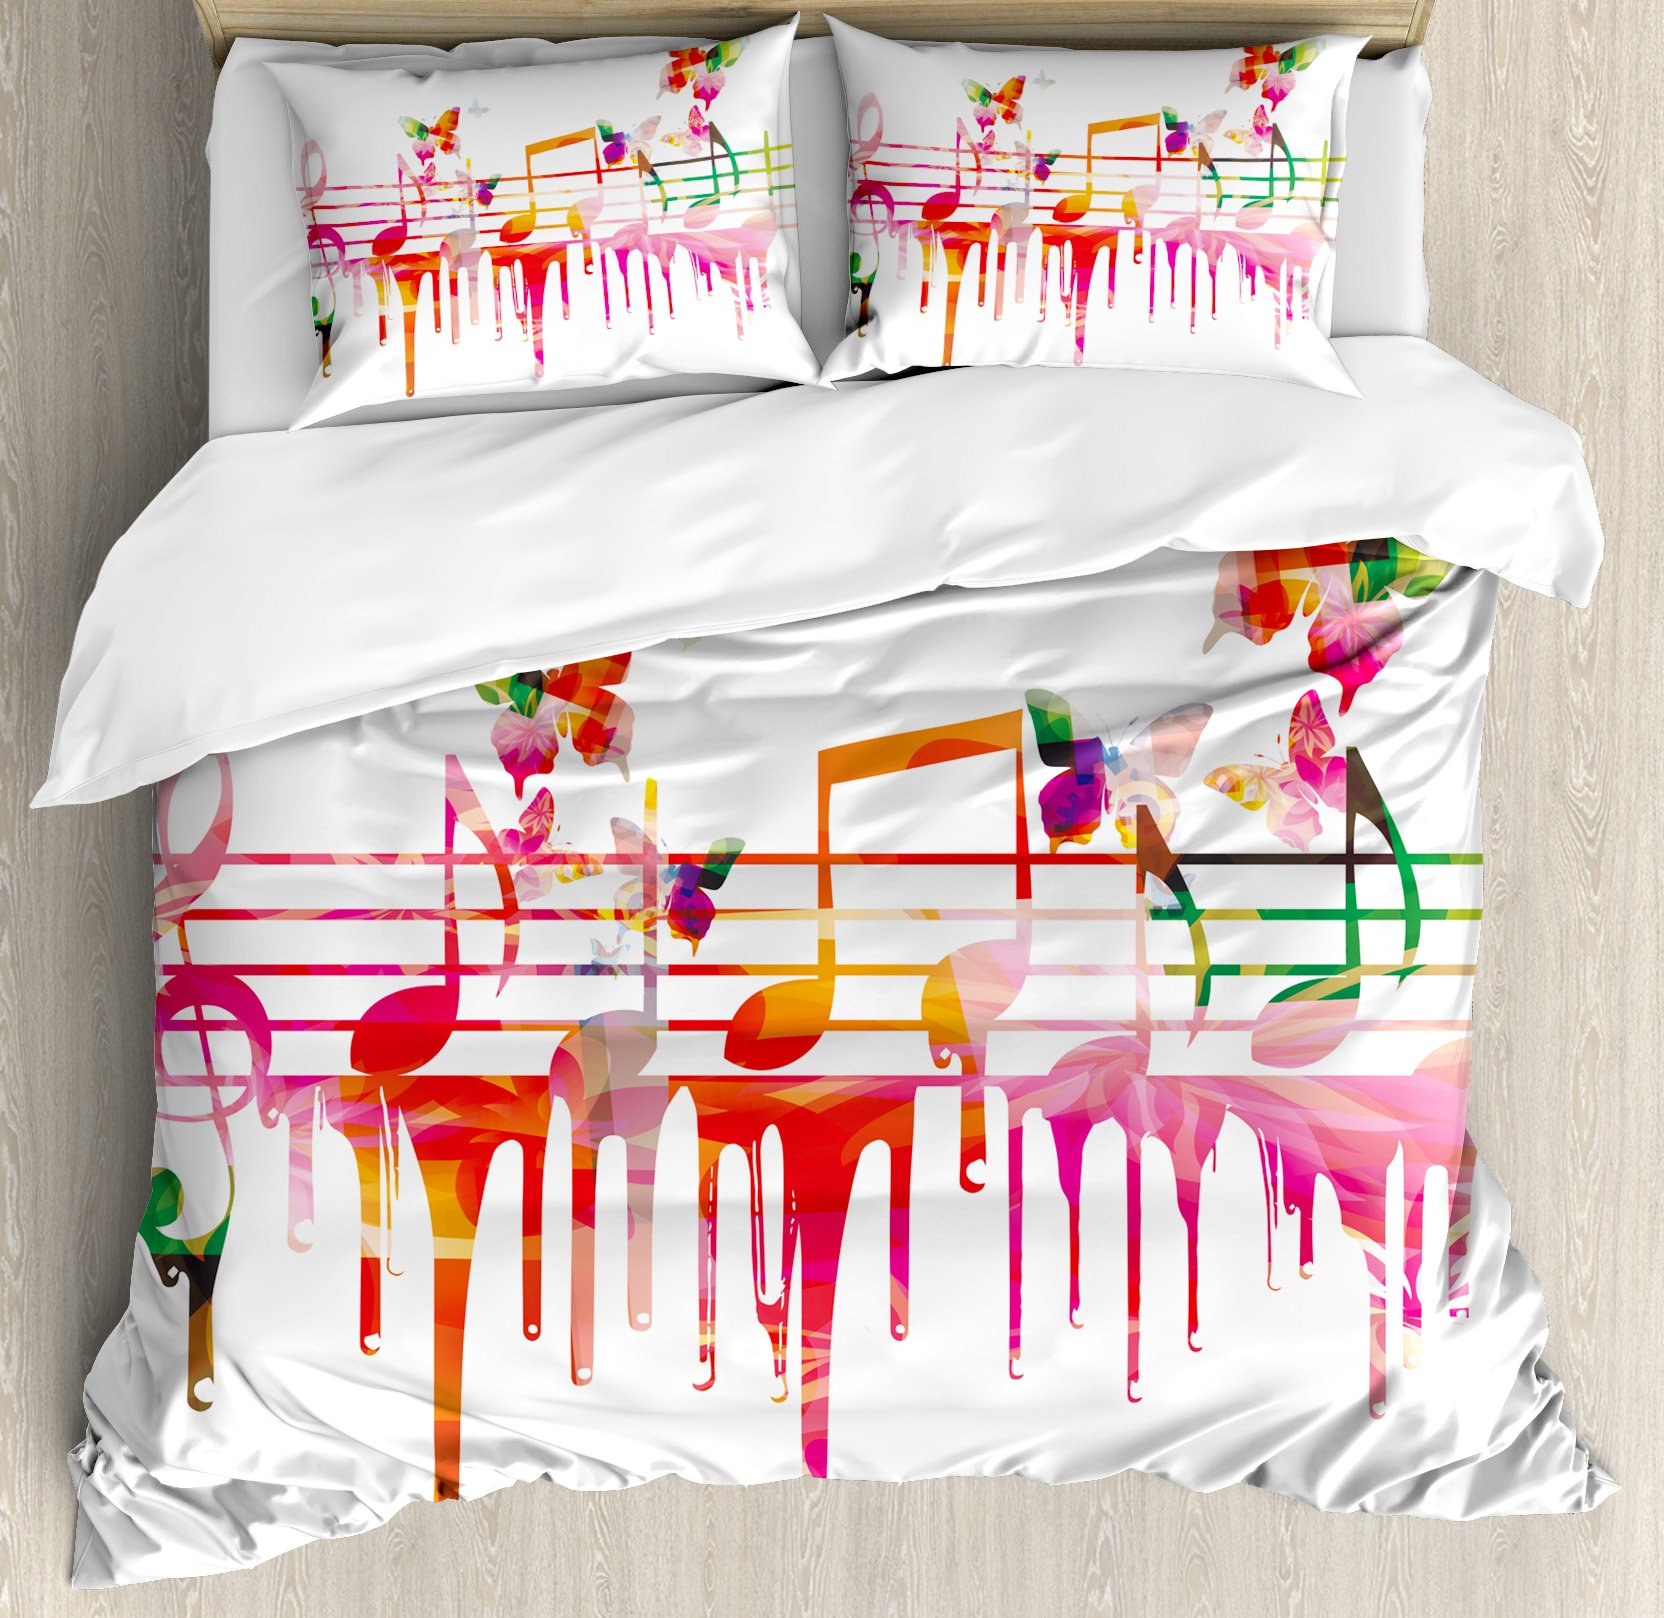 Music Decor Queen Size Duvet Cover Set by Ambesonne, Colorful Artwork Music Notes Clef Composer Orchestra Decorative Classic, Decorative 3 Piece Bedding Set with 2 Pillow Shams